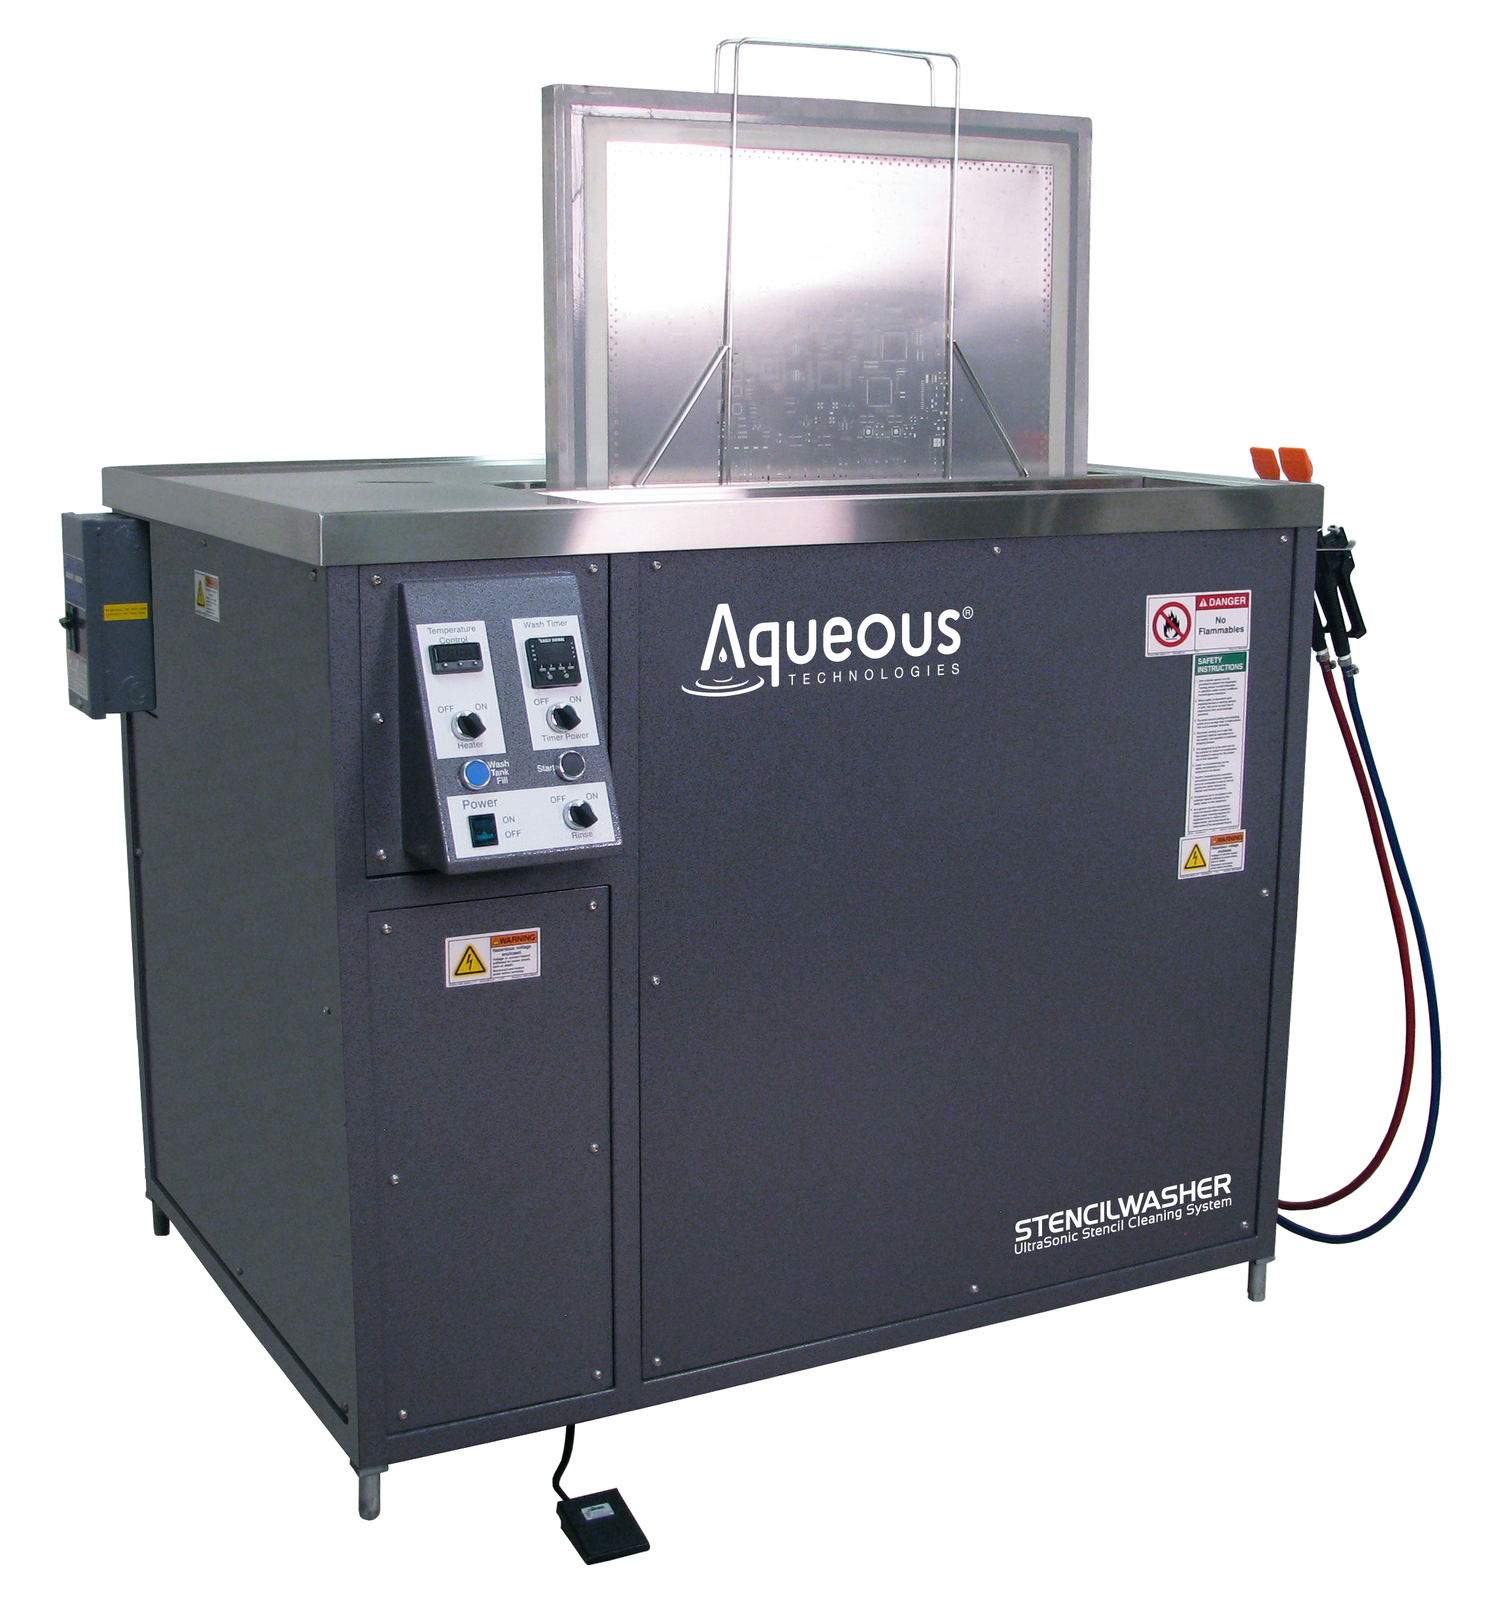 StencilWasherUltrasonic Stencil Cleaning Systems - Harnessing the Safe Power of Sound-Waves, StencilWasher Removes all Solder Paste and SMT Adhesive Types in Zero or Low Discharge Configurations